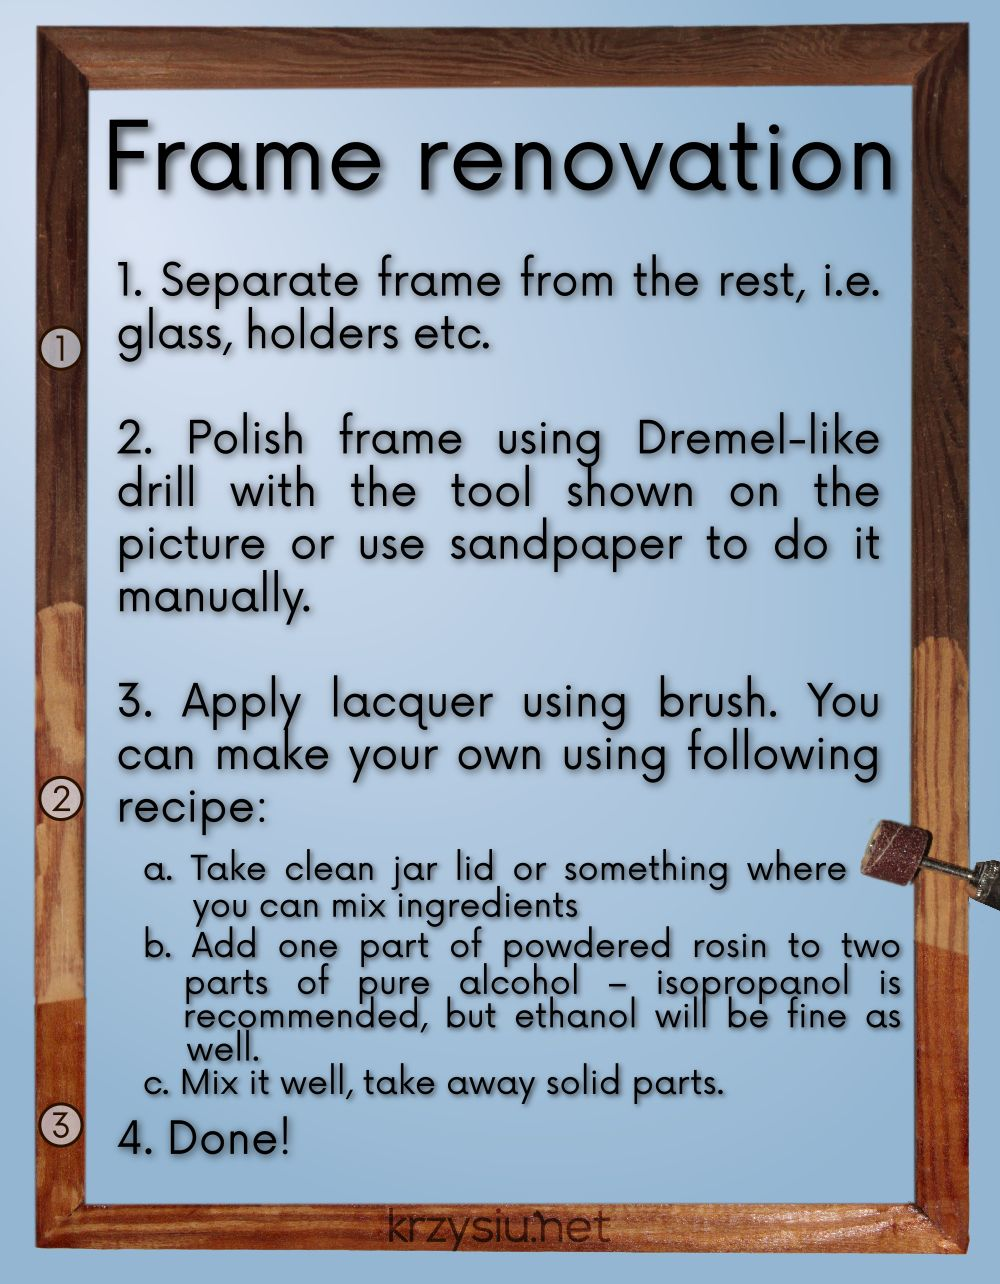 Frame renovation; text available below